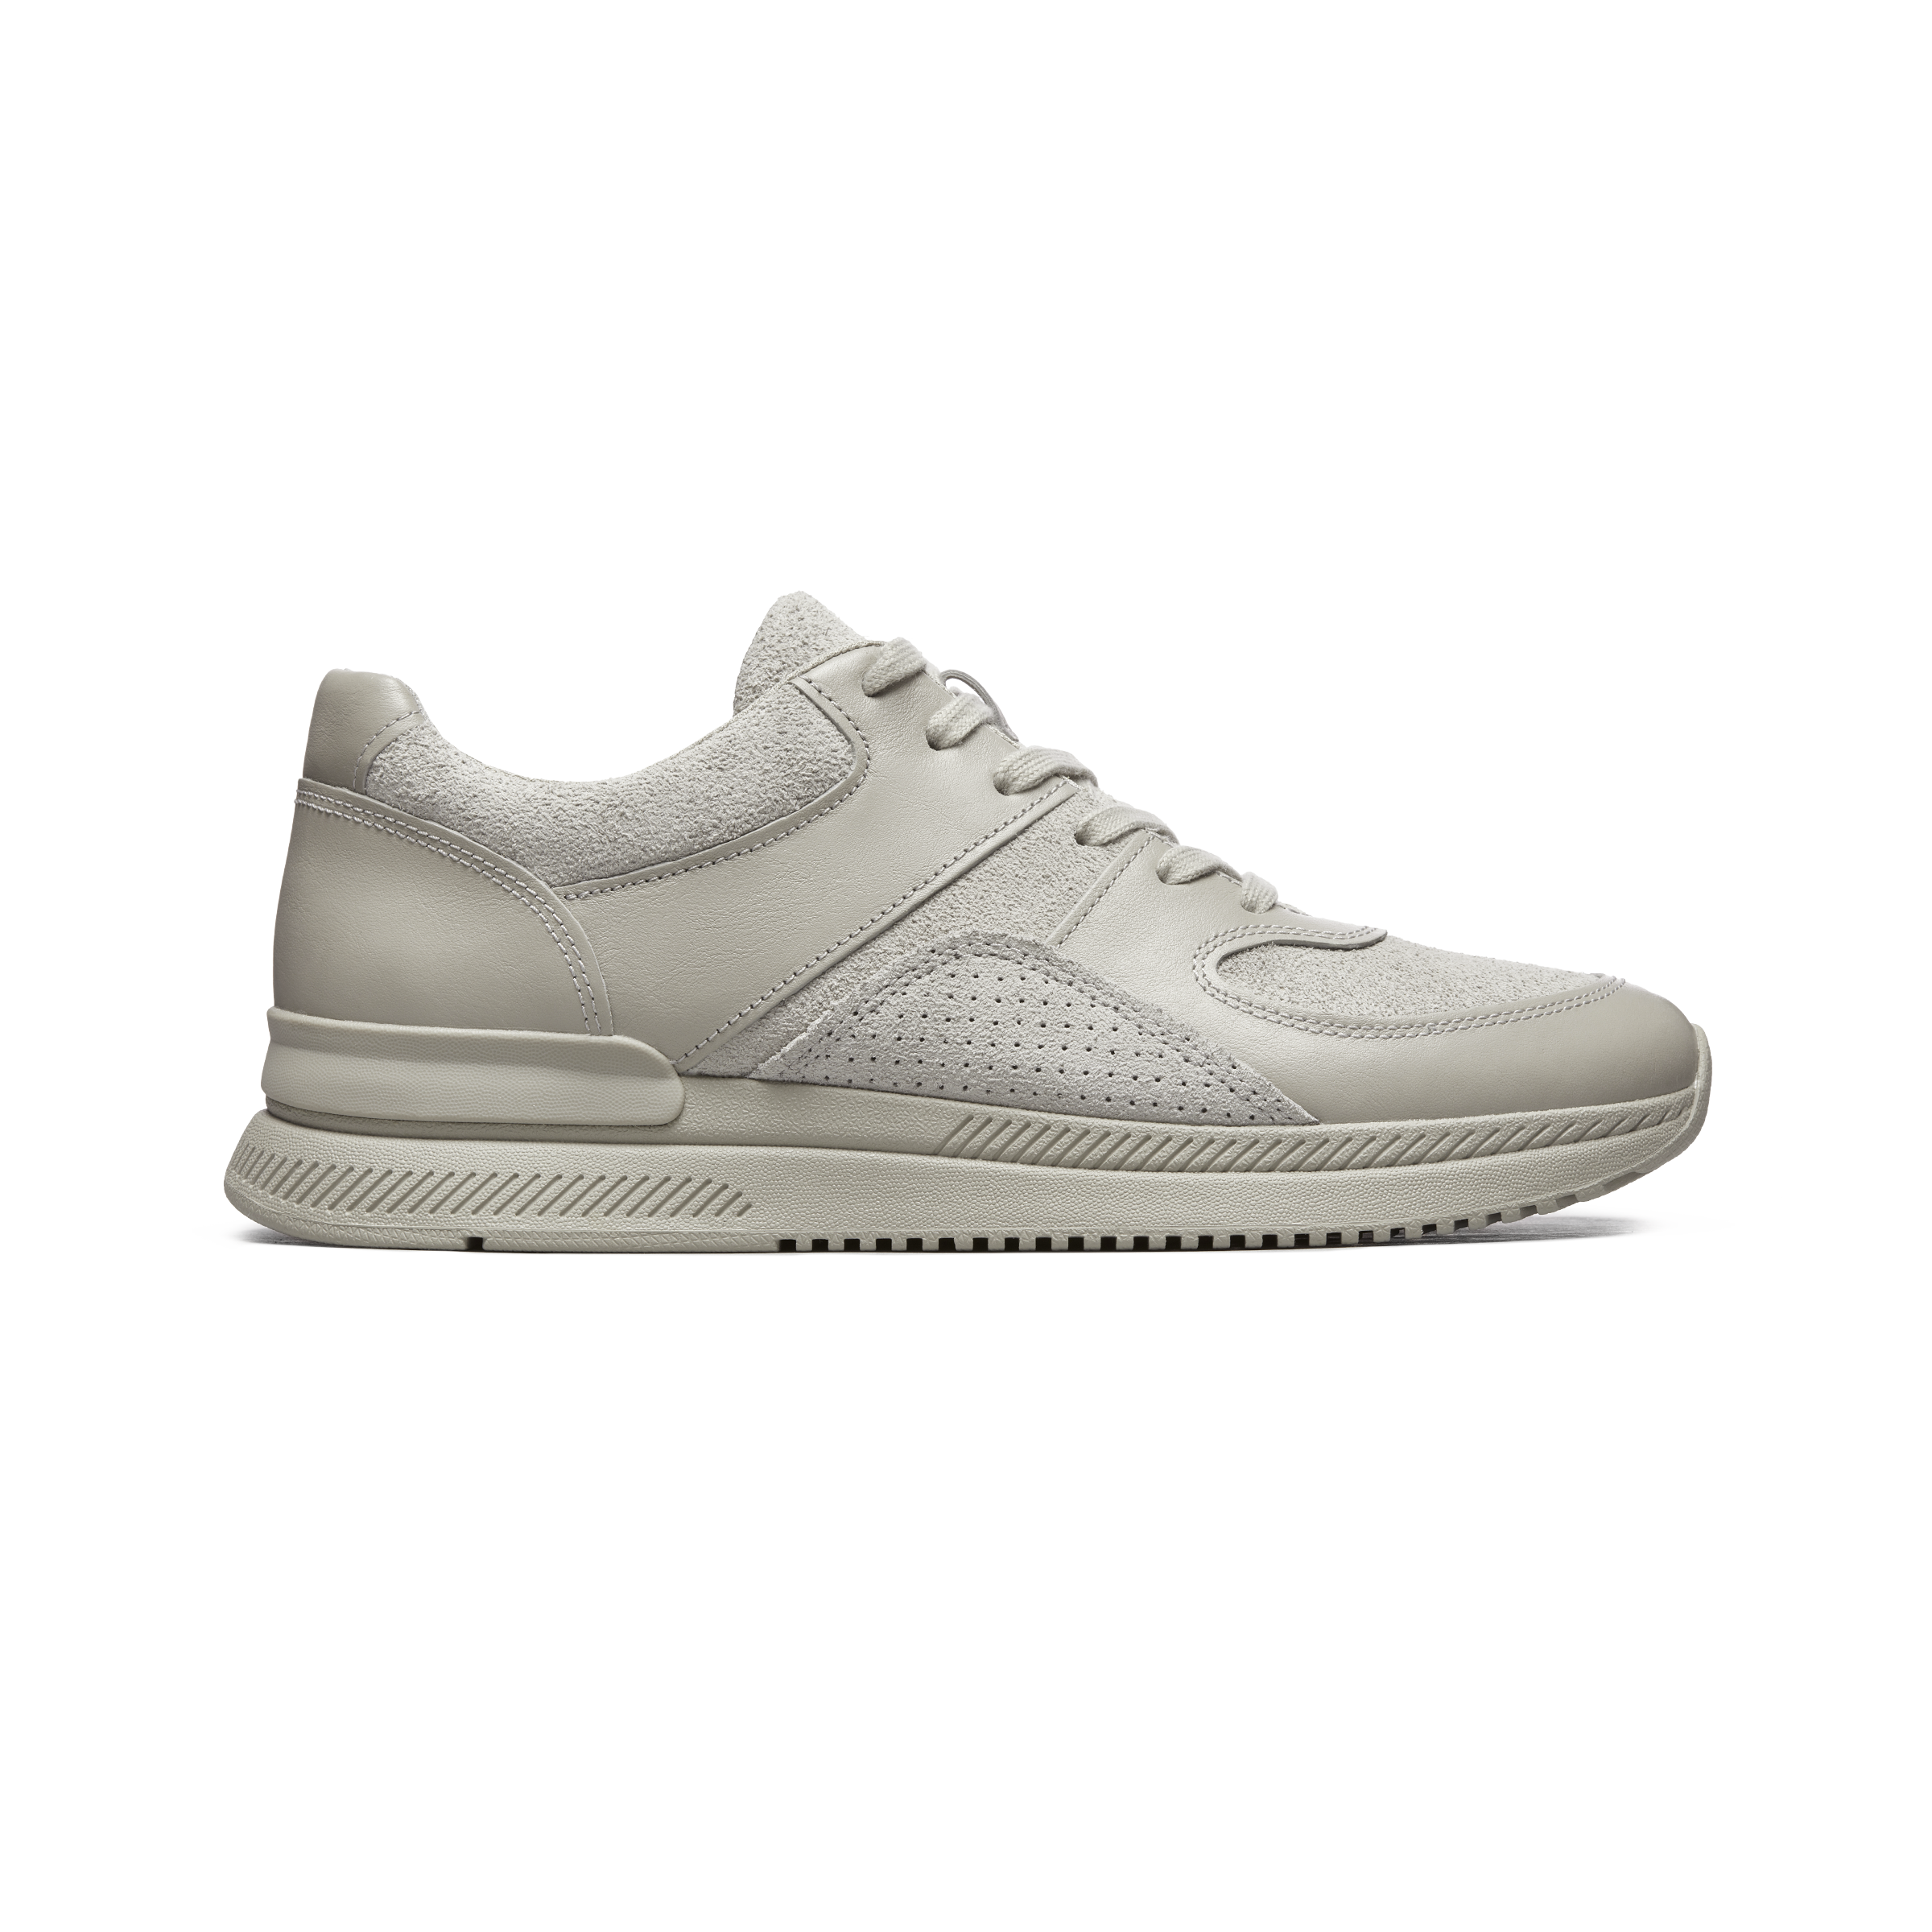 The Trainer Everlane everlane.com $98.00 SHOP NOW Sustainable fashion lovers listen up: this just-launched trainer from Everlane is the brand's lowest impact style to date, made with less waste, less energy, and 54 percent less virgin plastic.